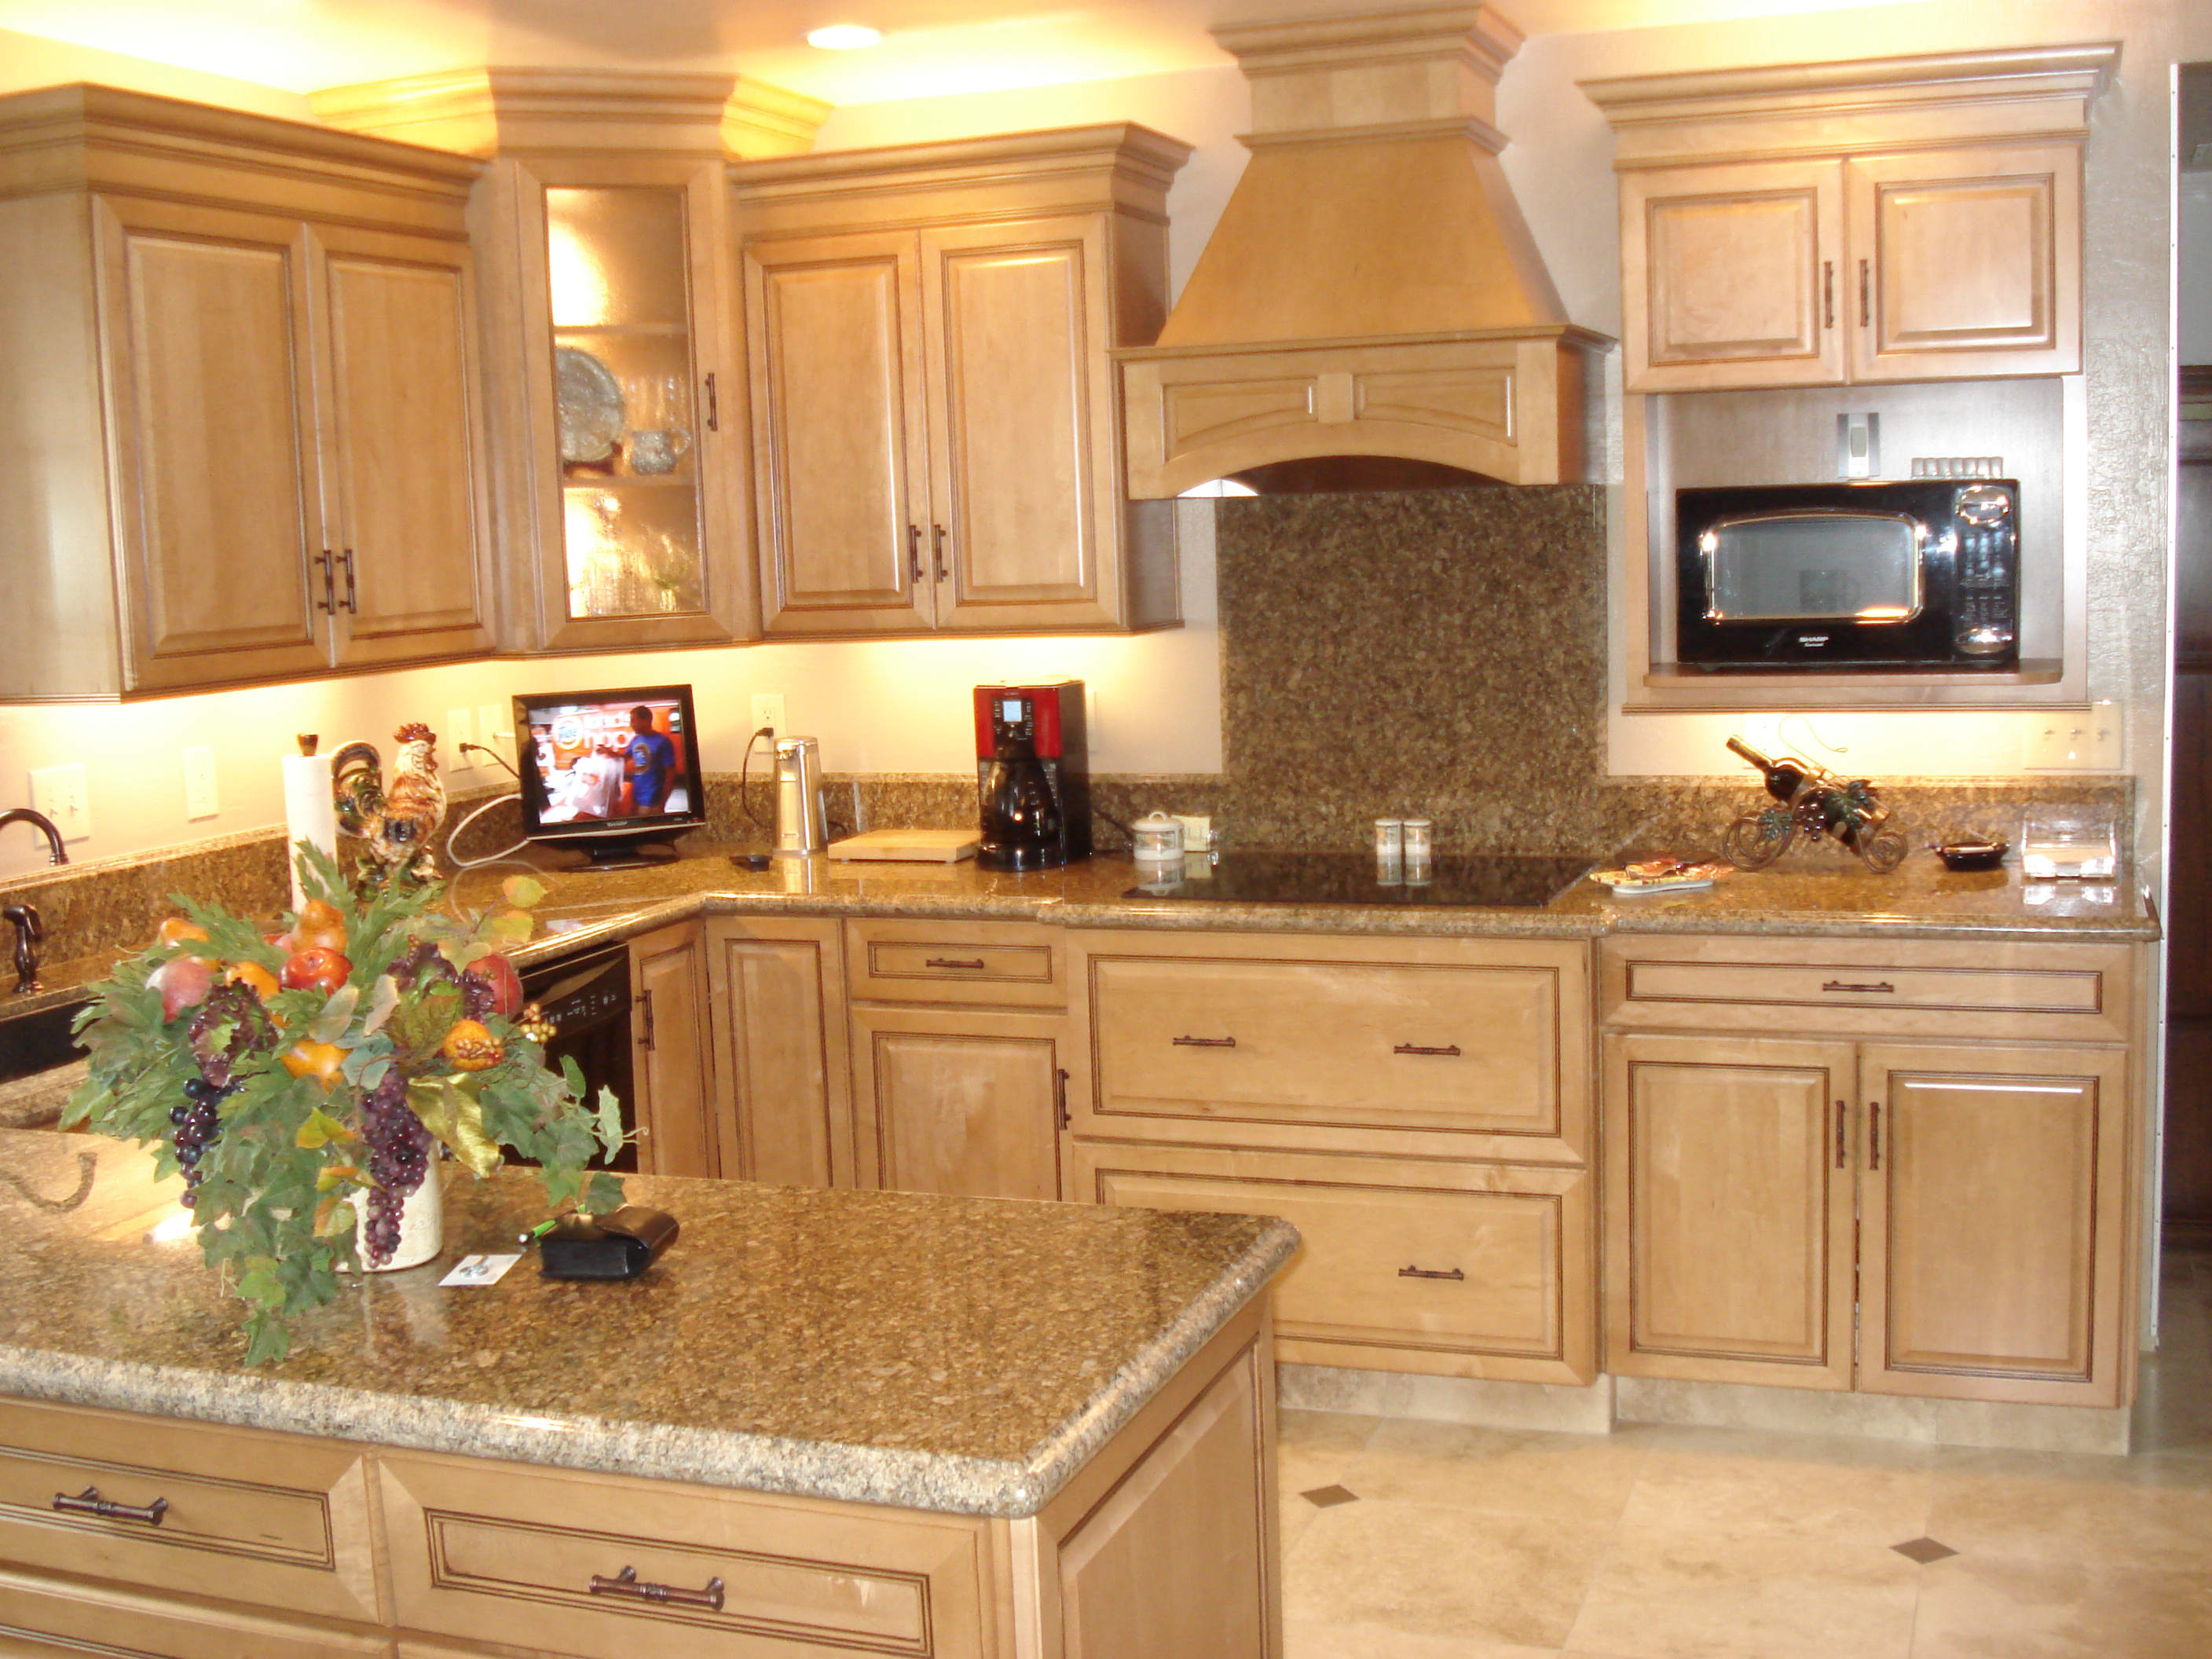 Kitchen remodels absolute electric for Kitchen remodeling ideas pics